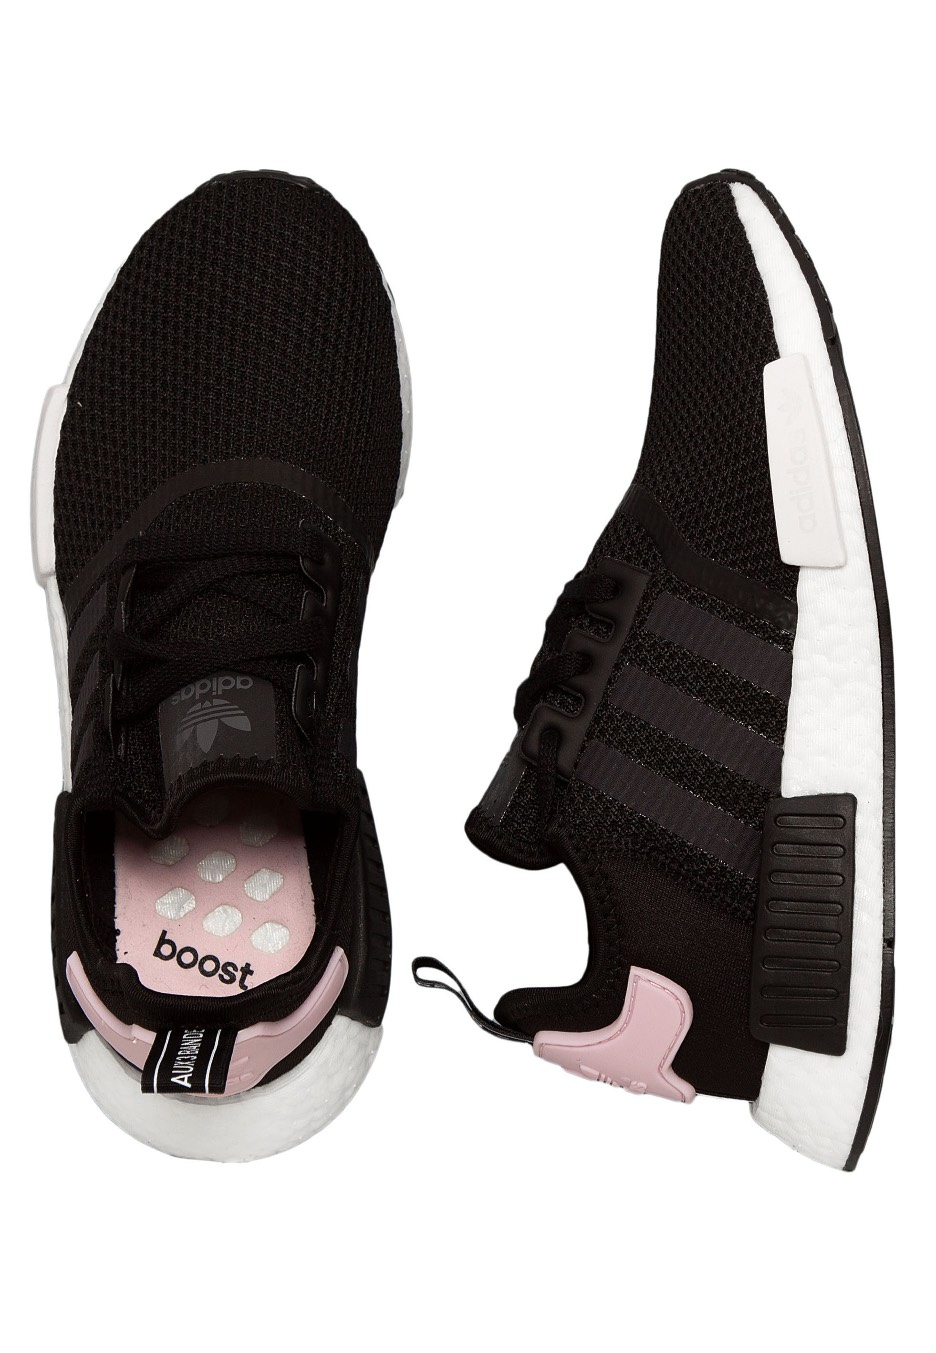 huge selection of d0dbe 8c725 Adidas - NMD_R1 W Core Black/Ftwr White/Clear Pink - Girl Shoes